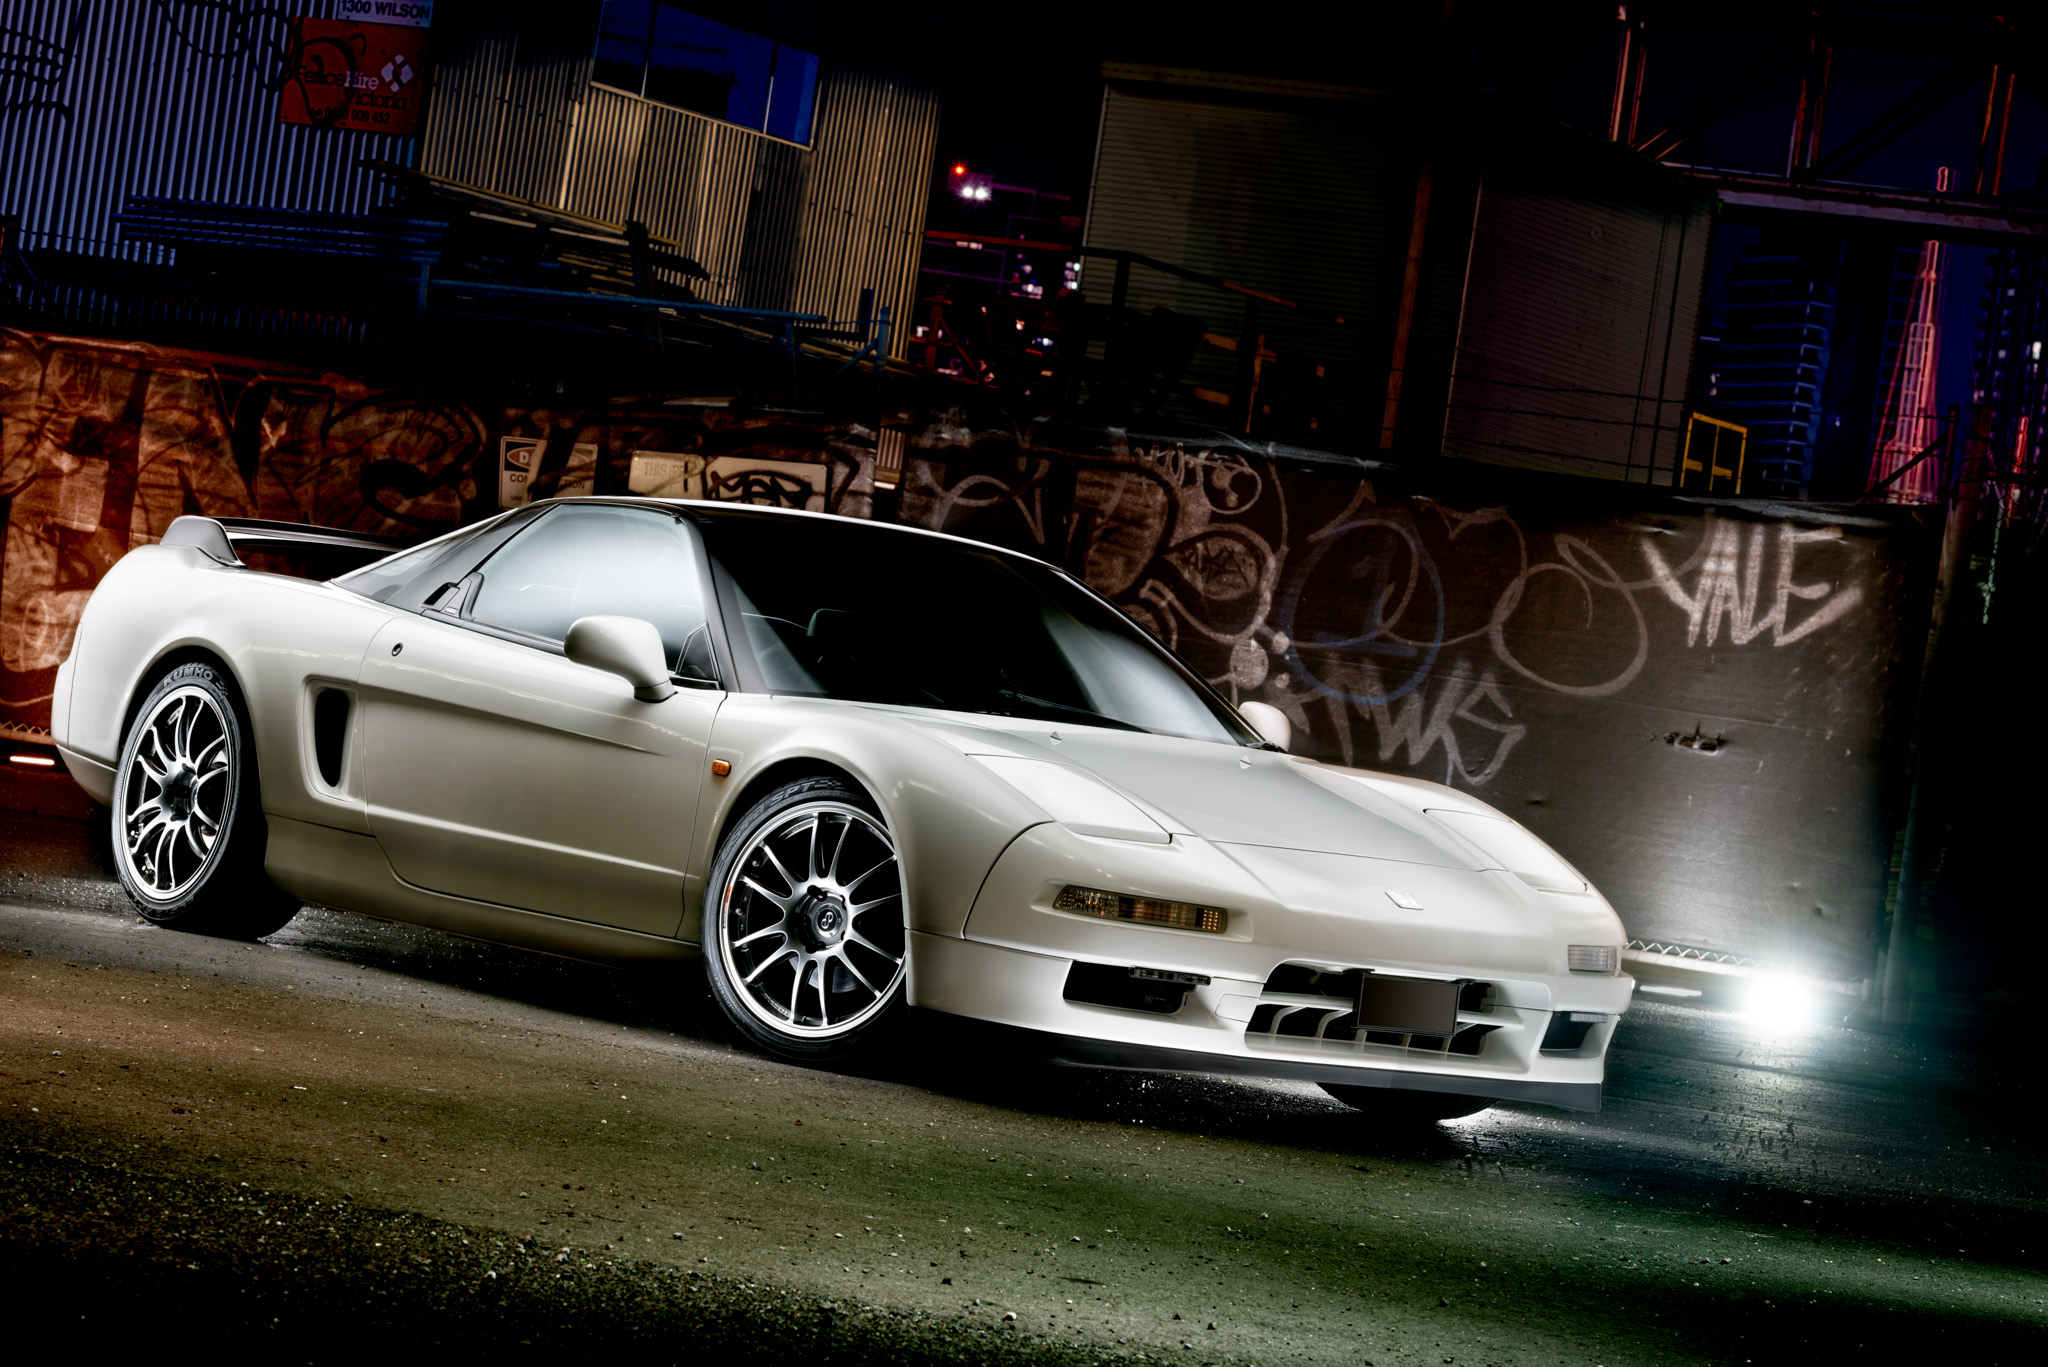 Light Painting - Honda NSX white